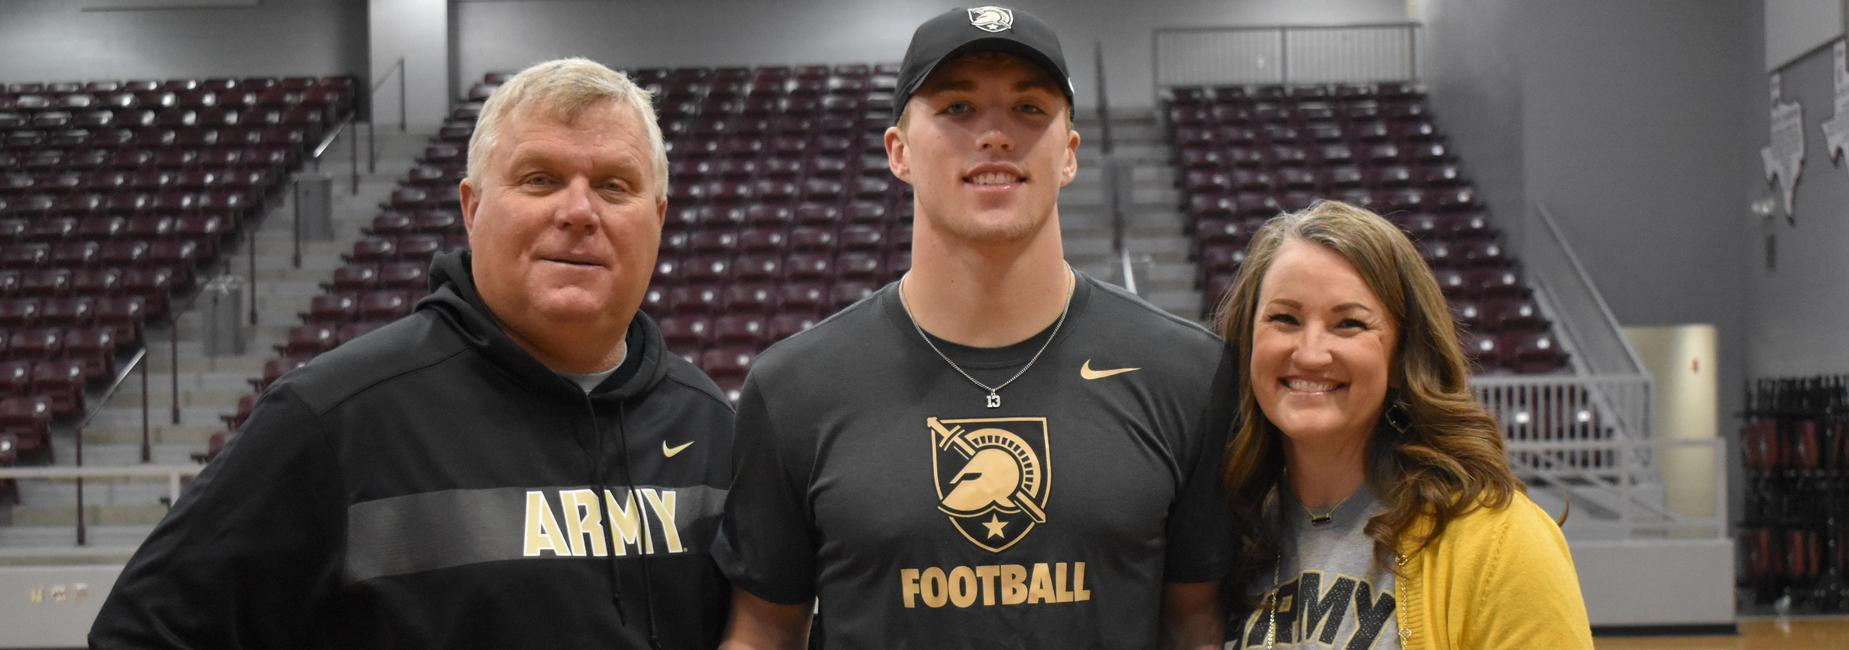 The Daily Family pose together after Bryson signs with Army Football